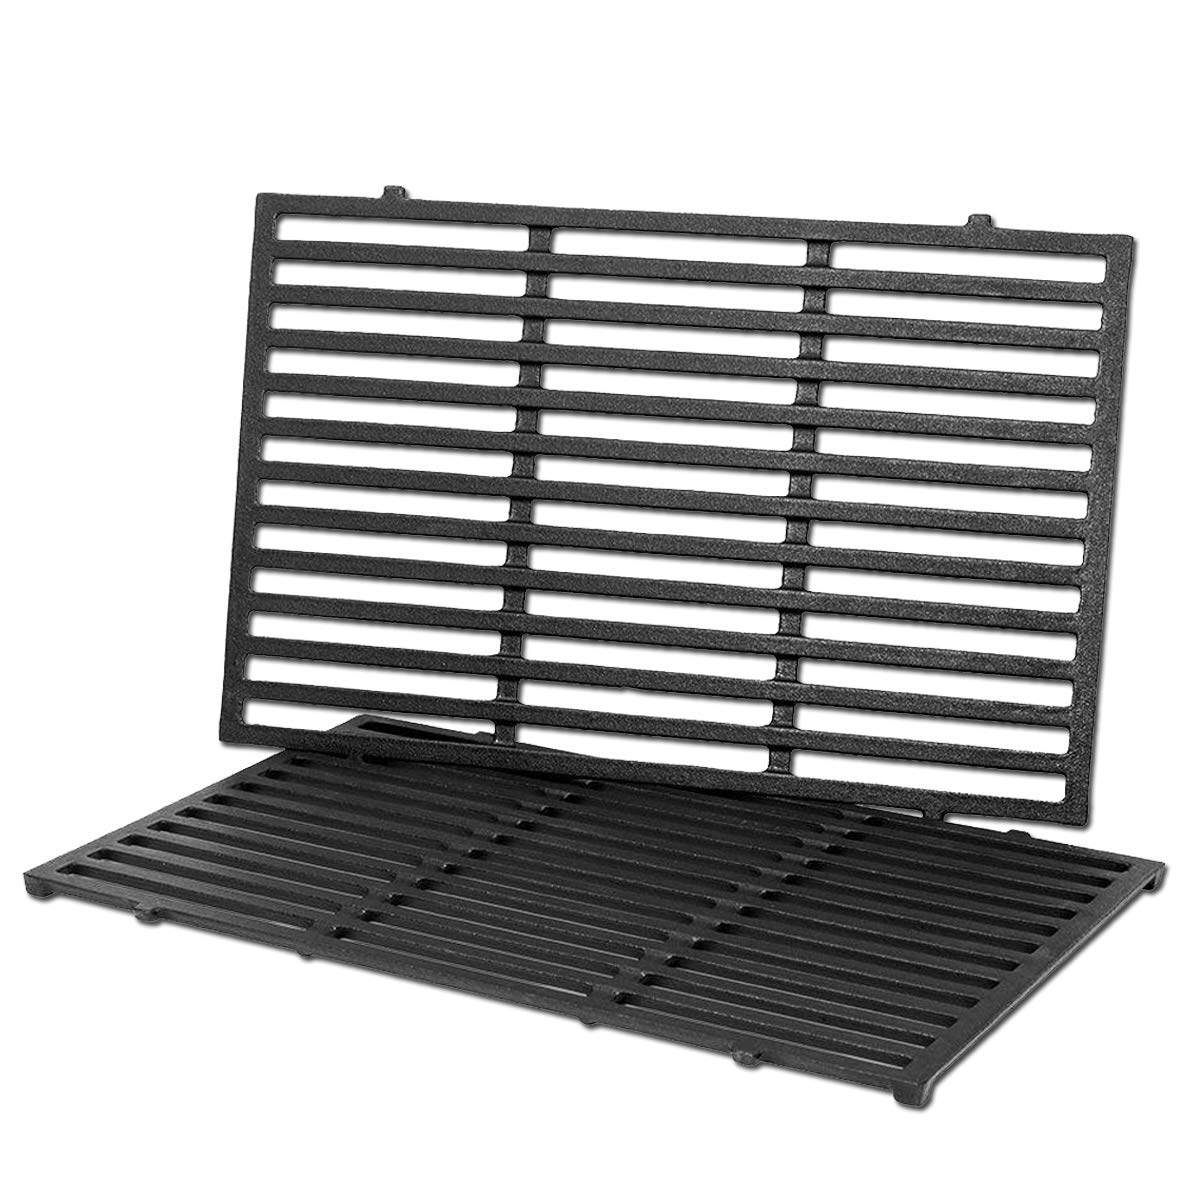 Details about Uniflasy Cast Iron Grill Cooking Grid Grates Replacement  Parts for Weber 1100